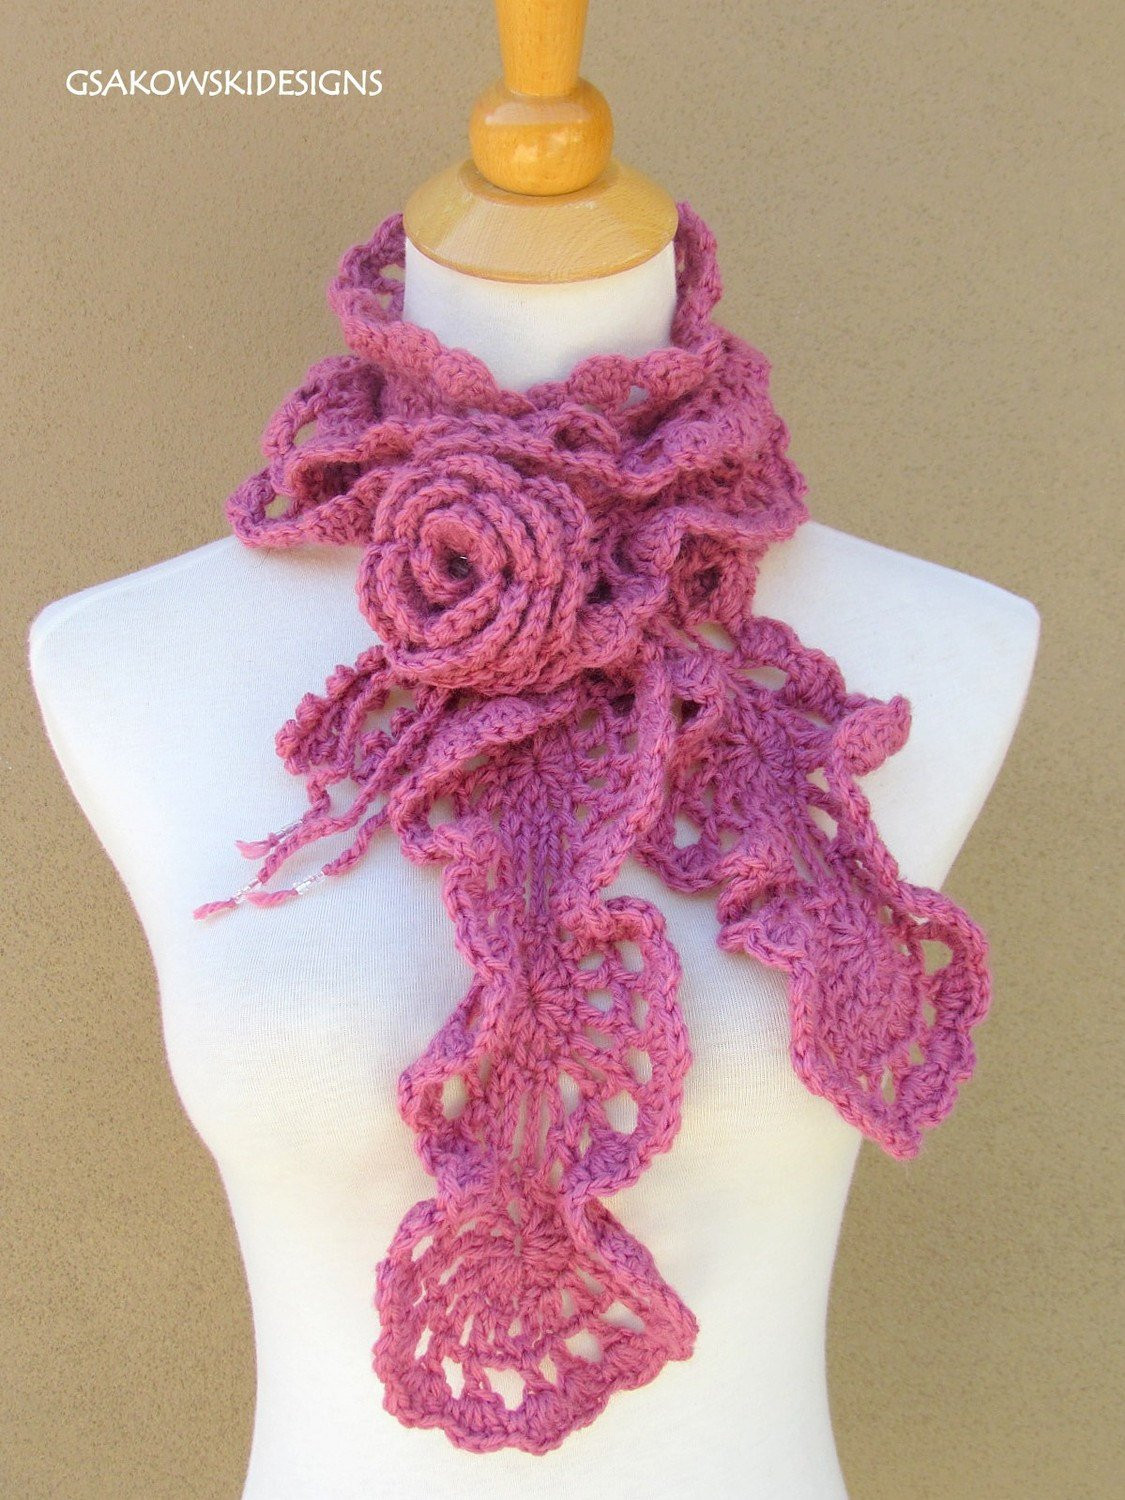 Crochet Scarf Unique Crochet Ribbed Scarf Pattern – Crochet Club Of Incredible 48 Images Crochet Scarf